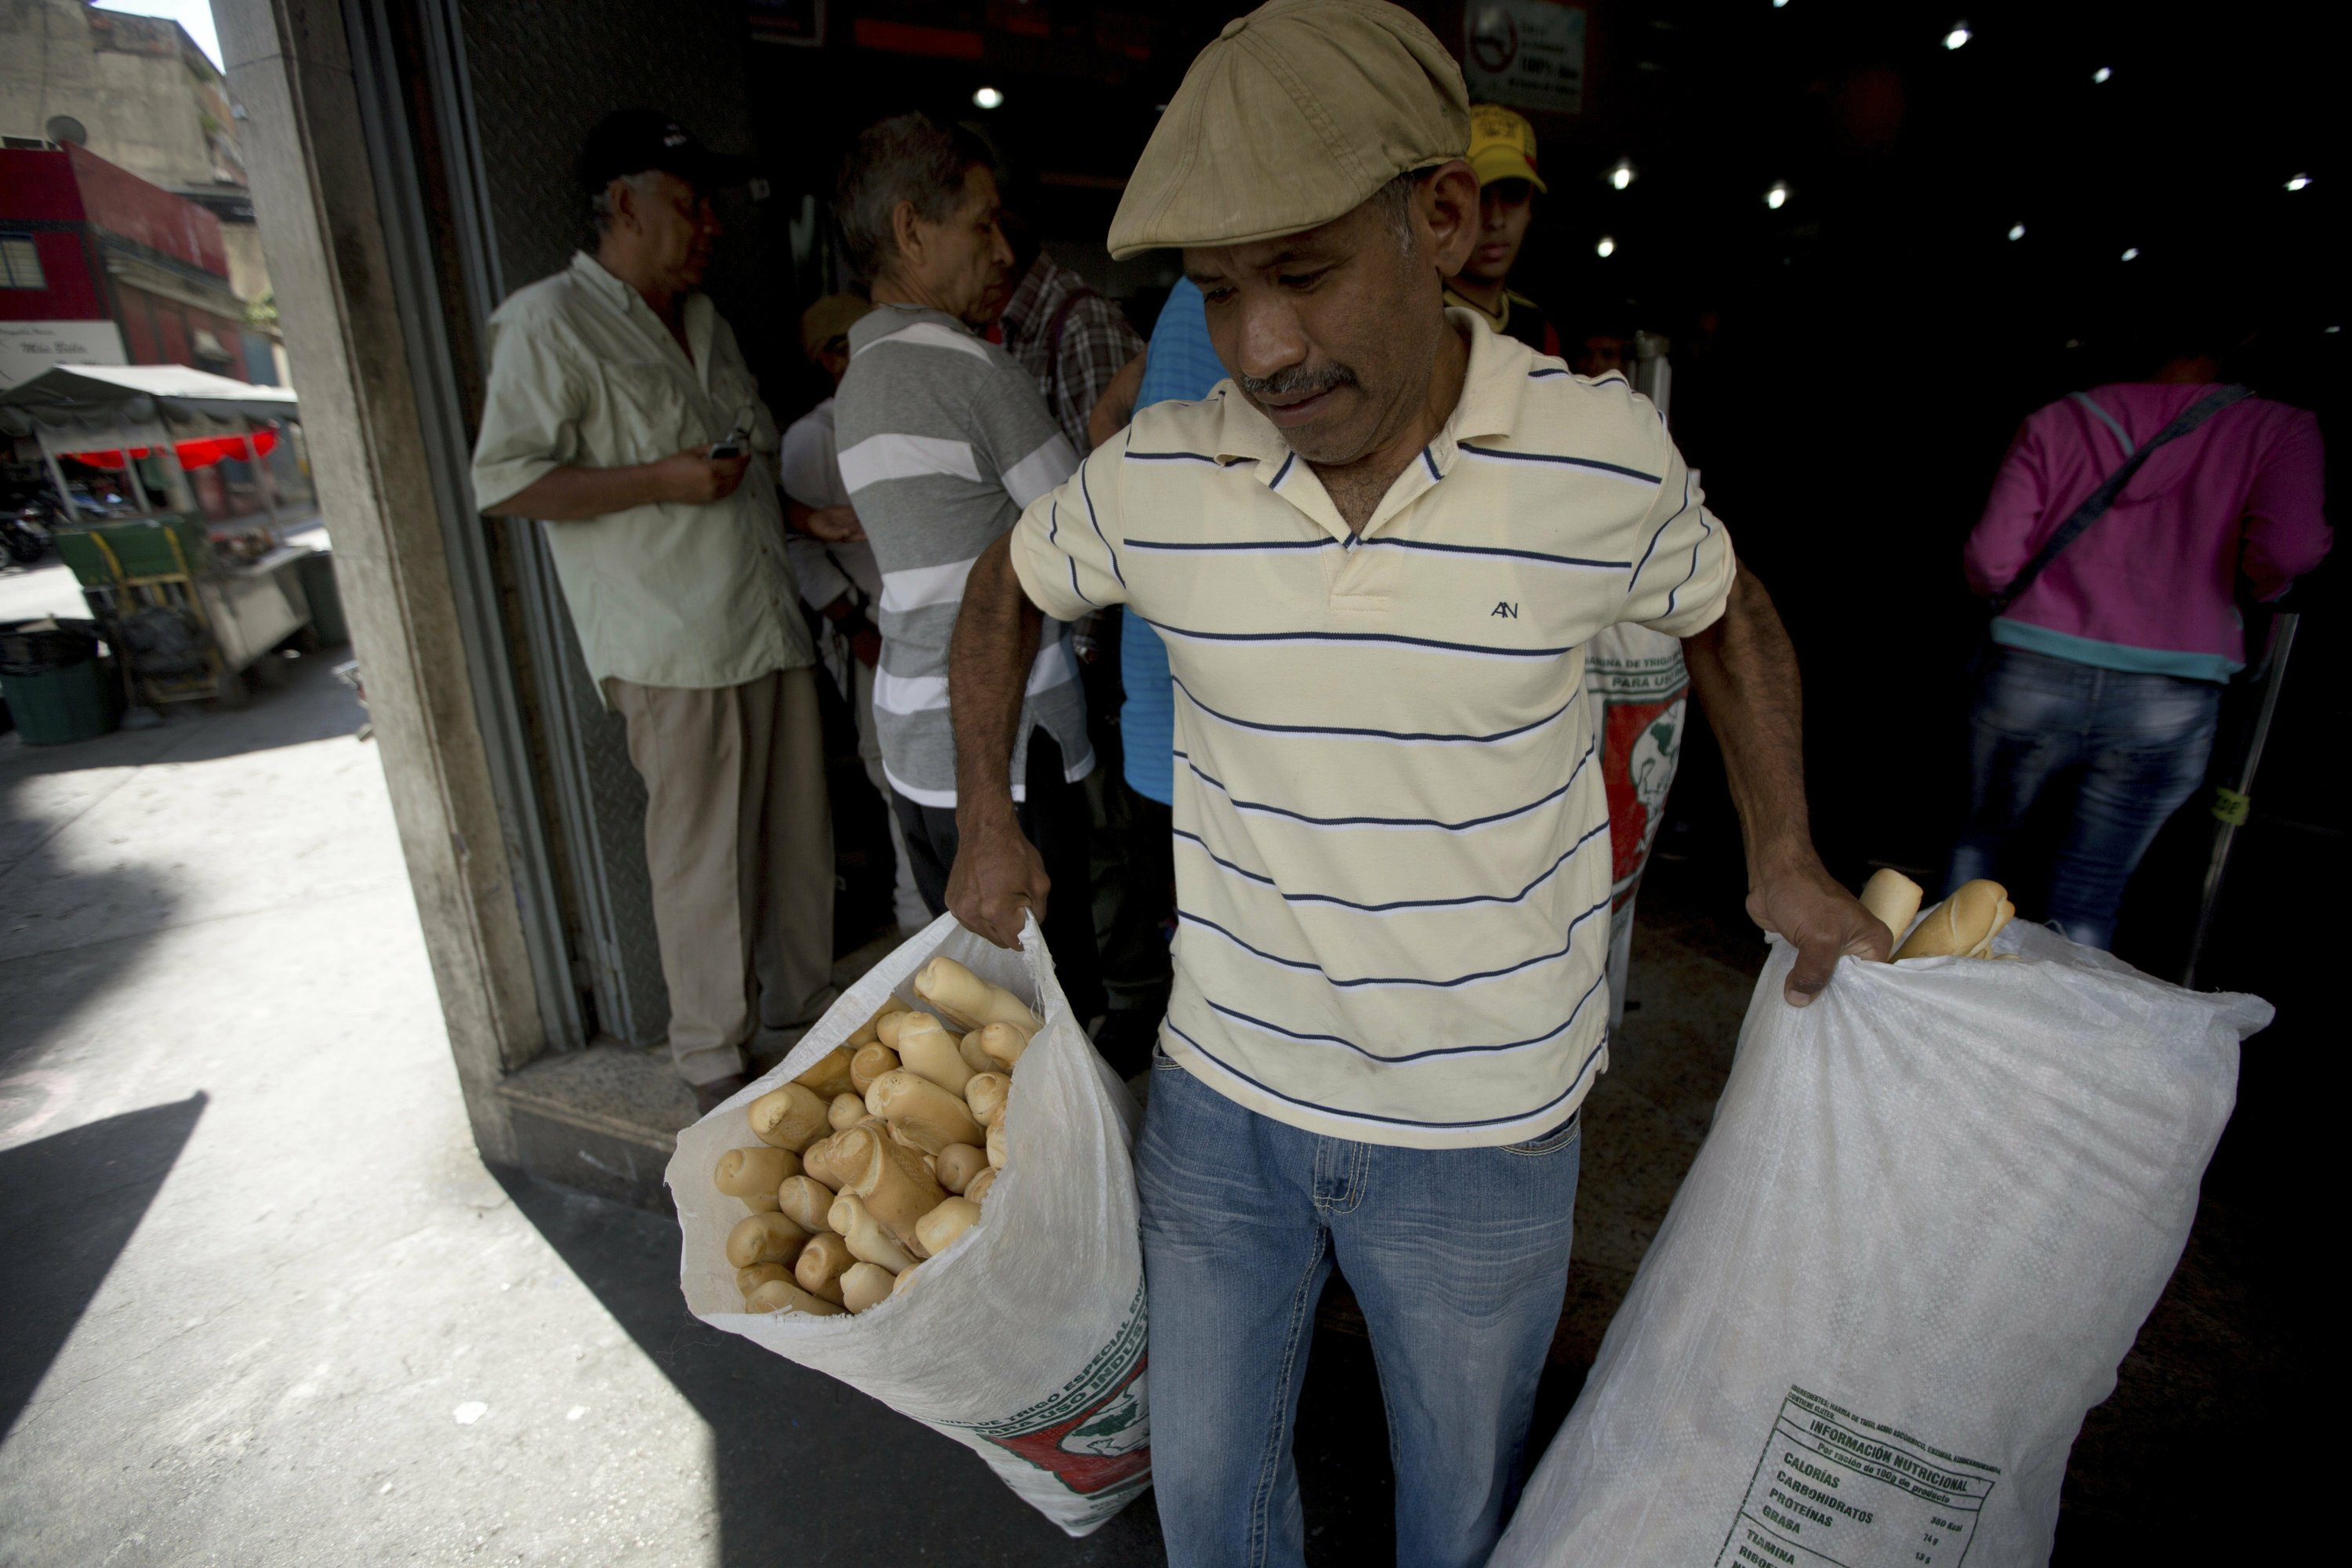 Venezuela's socialist leaders seize bakeries in 'bread war'